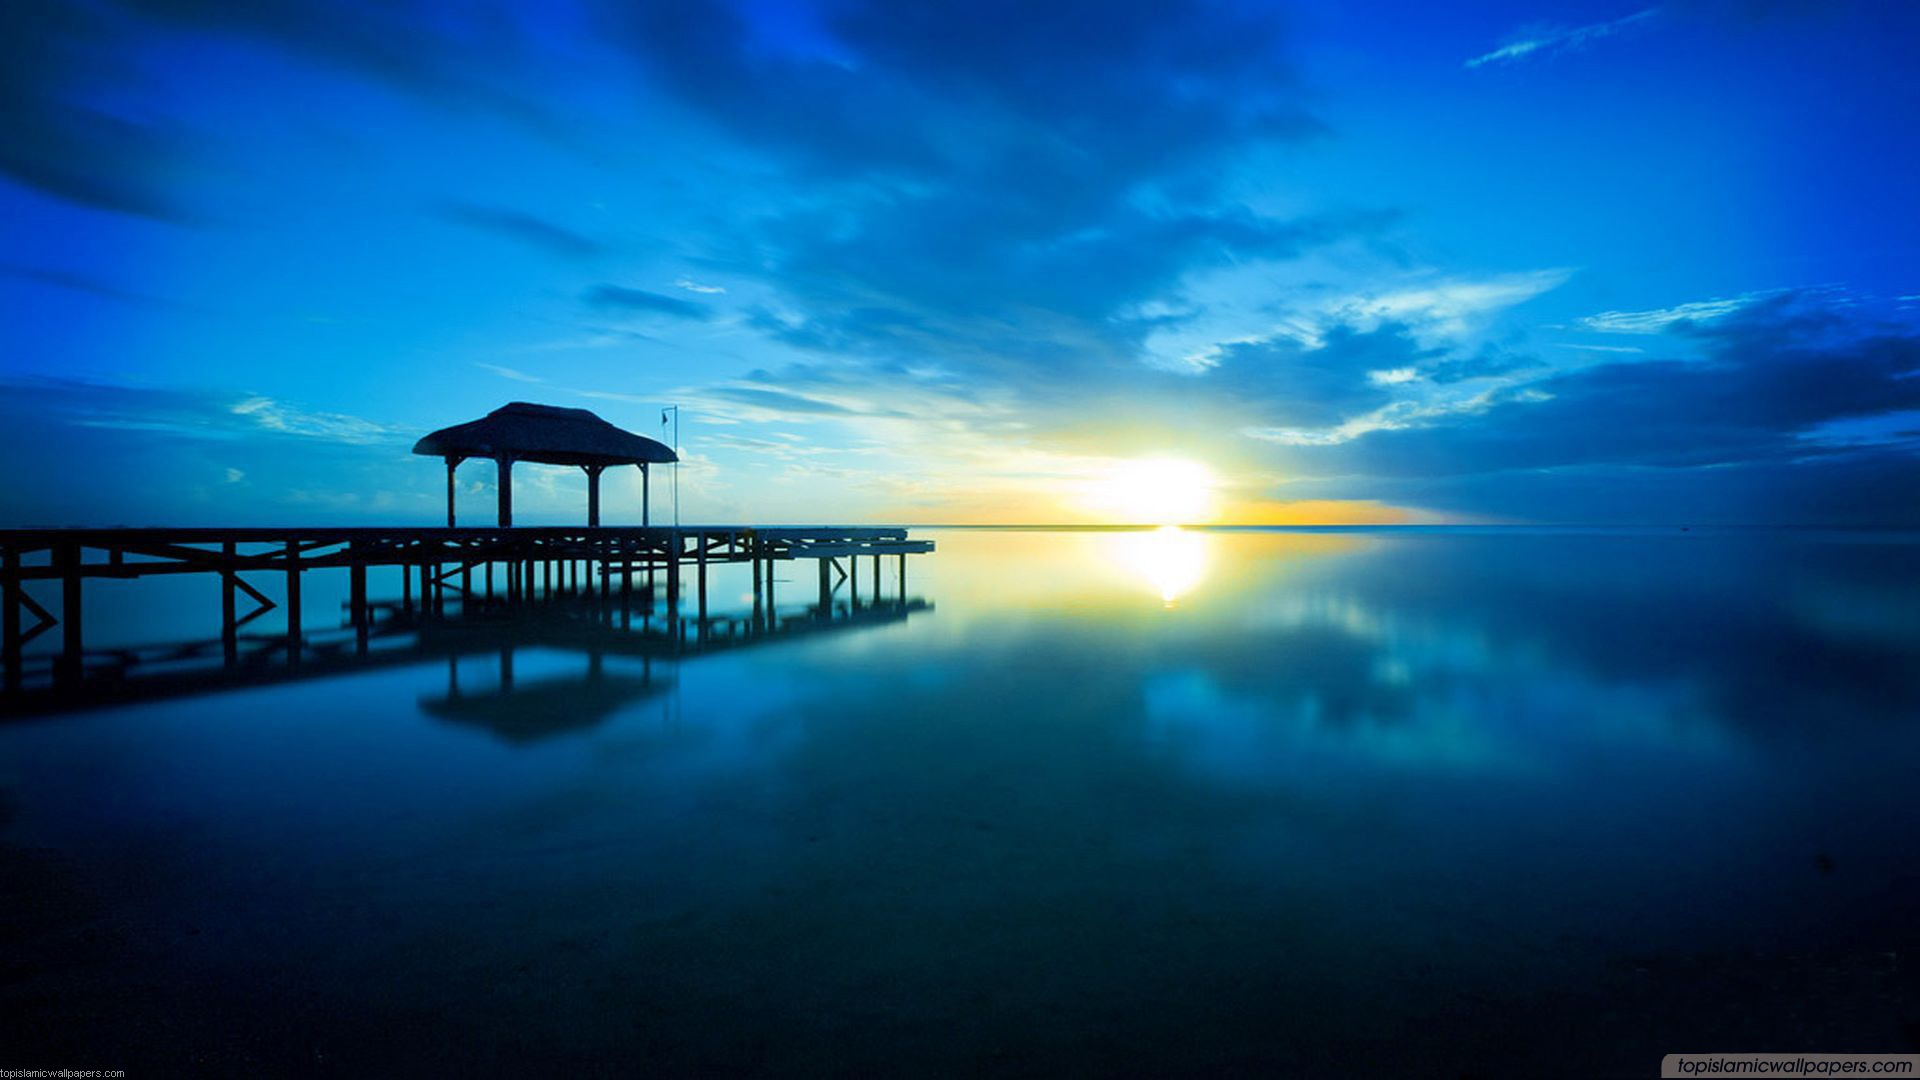 Wonderful Blue Sea HD Sunset Wallpaper 1920x1080